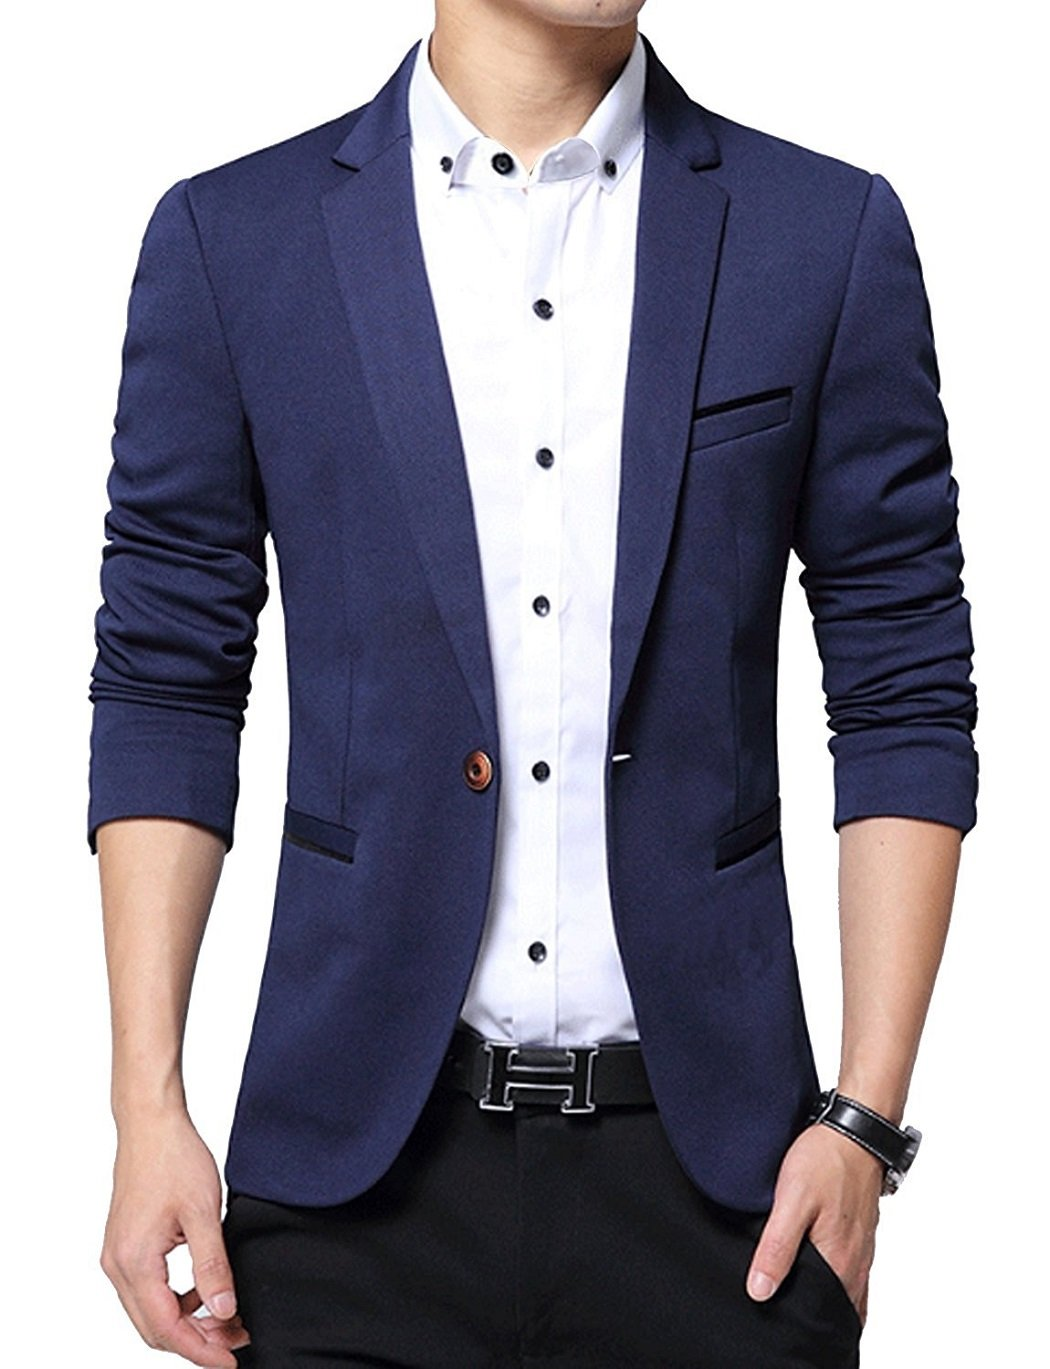 YIMANIE Mens Blazer Jacket Slim Fit Casual Single One Button Premium Lightweight Blazer Coat Navy Medium